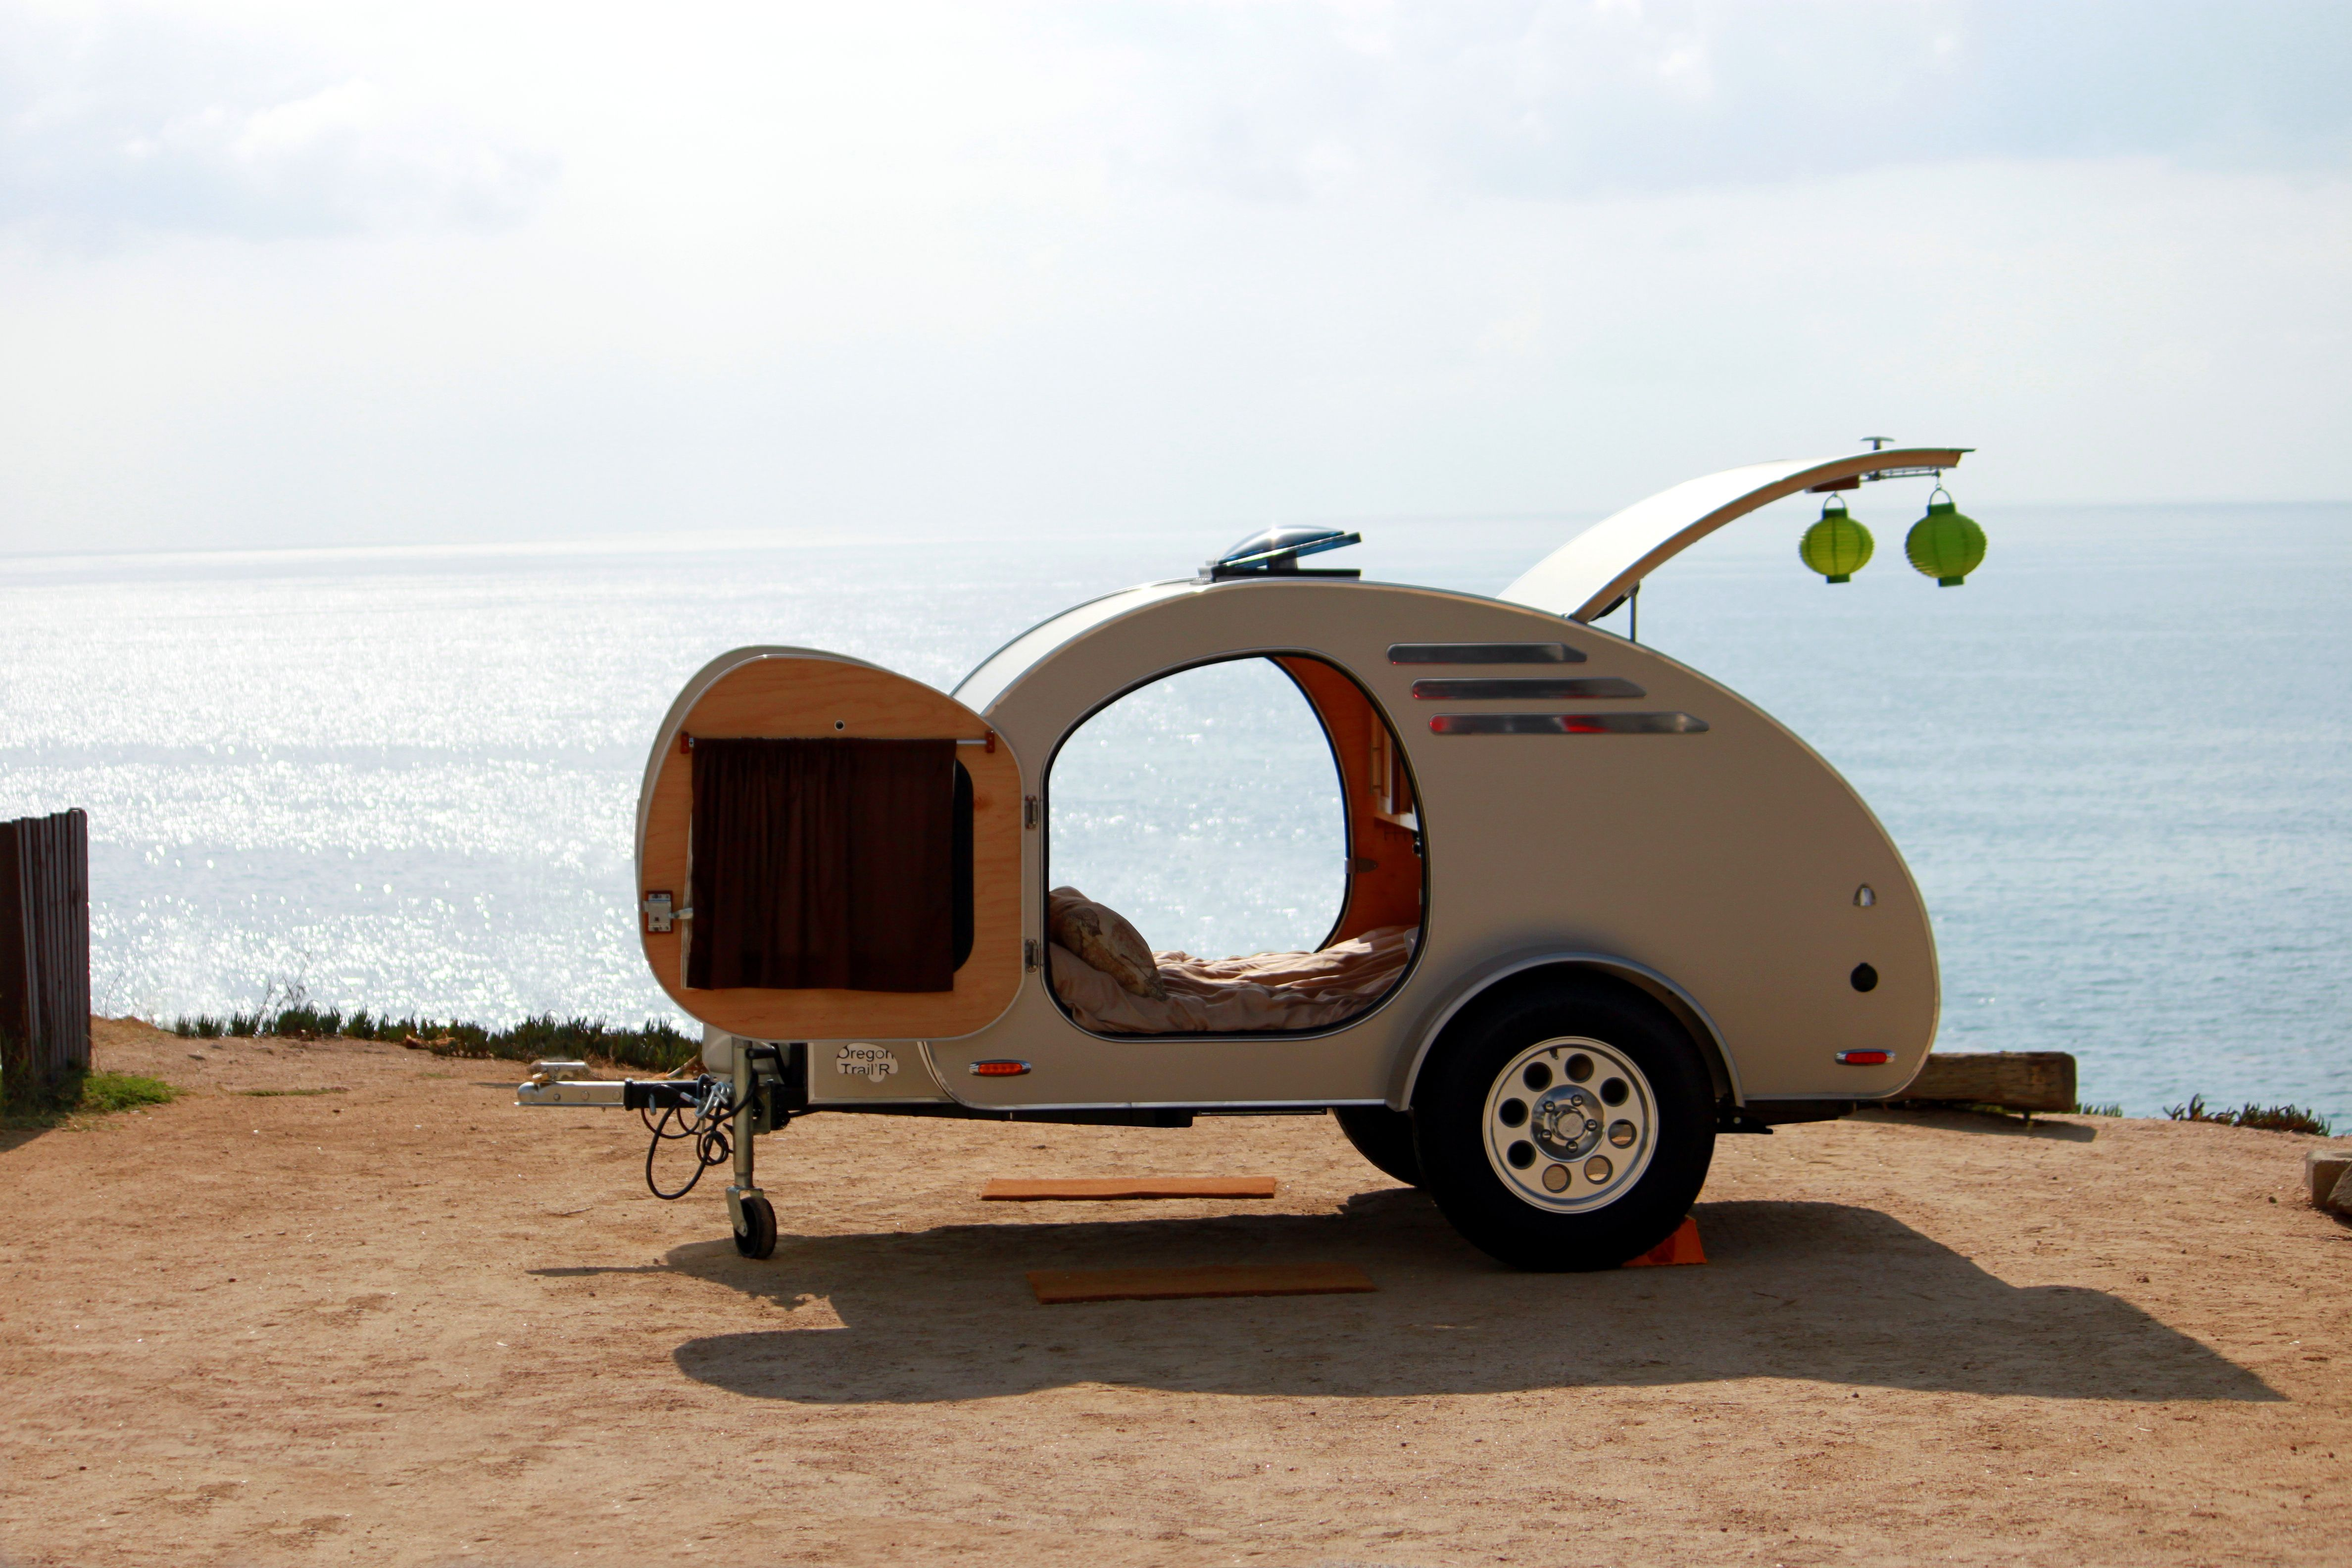 Oregon Trail'R FronTear - Teardrop trailer on the beach